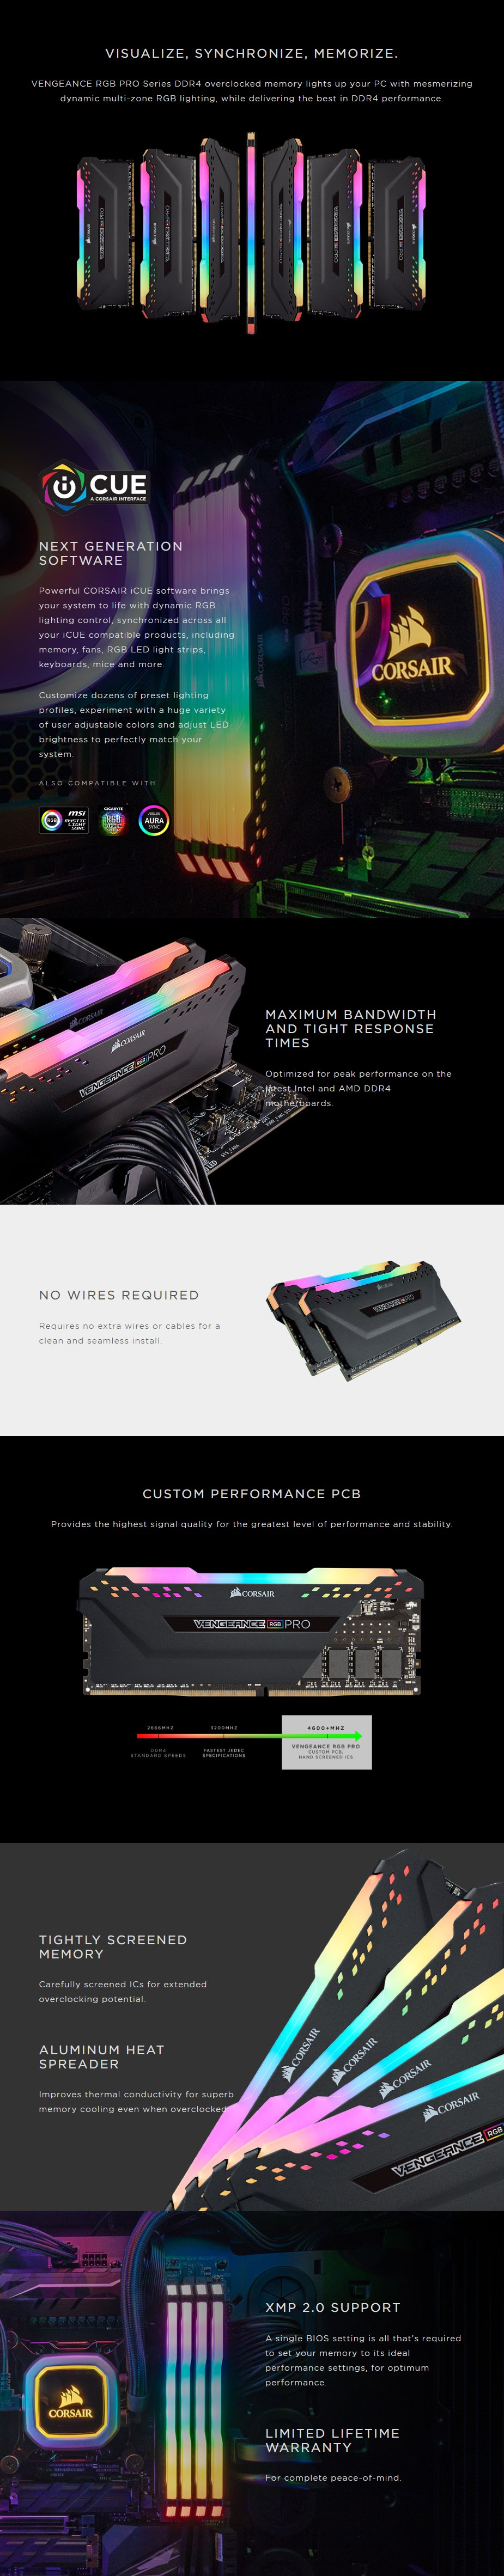 Corsair Vengeance RGB PRO 32GB (2x 16GB) DDR4 3200MHz Memory AMD - Black - Overview 1